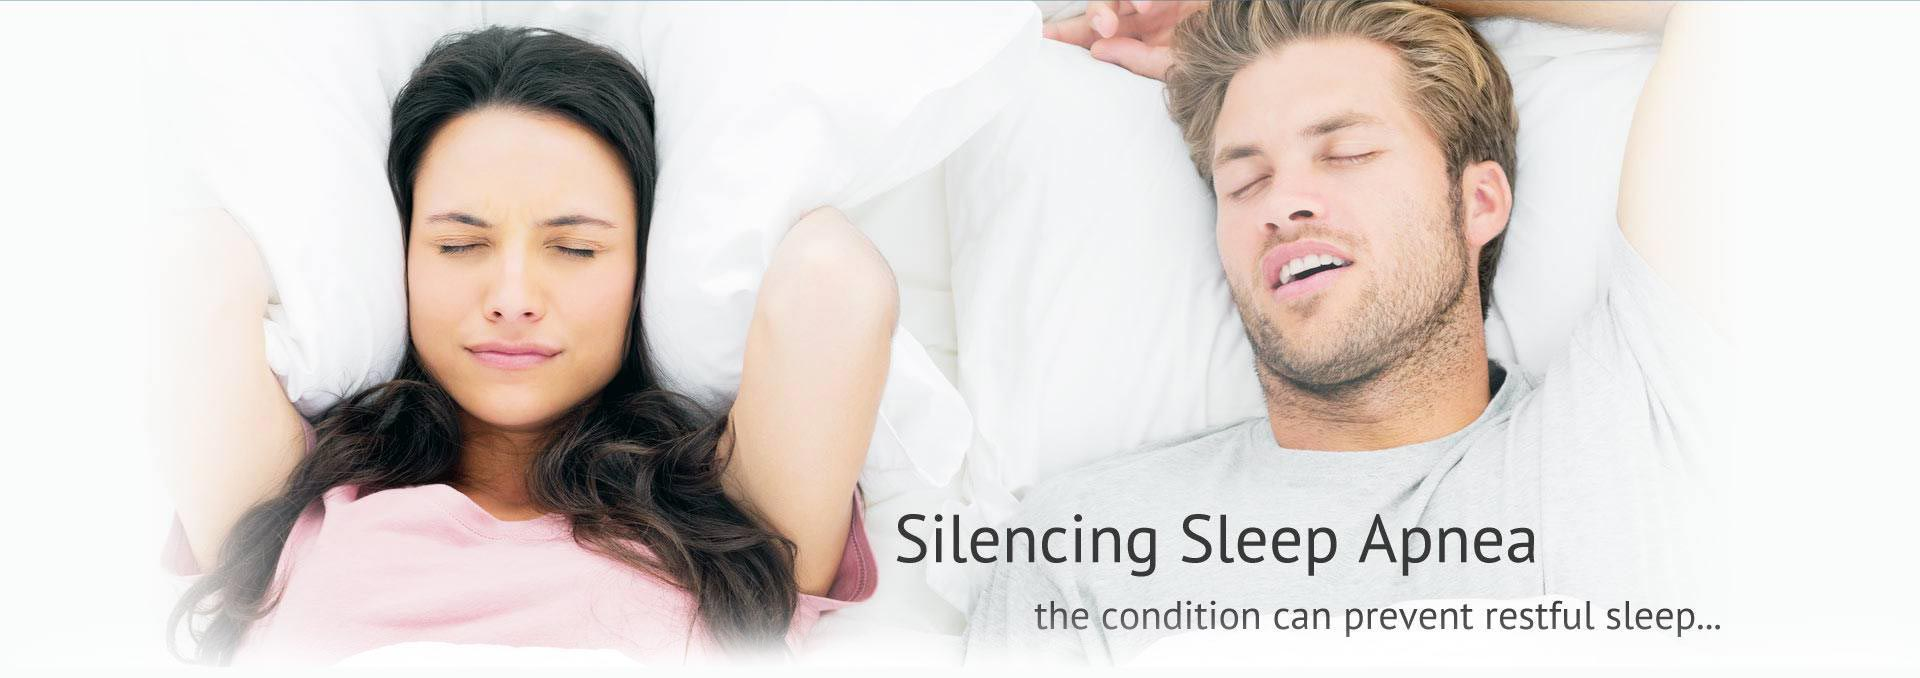 sleep-apnea-doctors-1.jpg